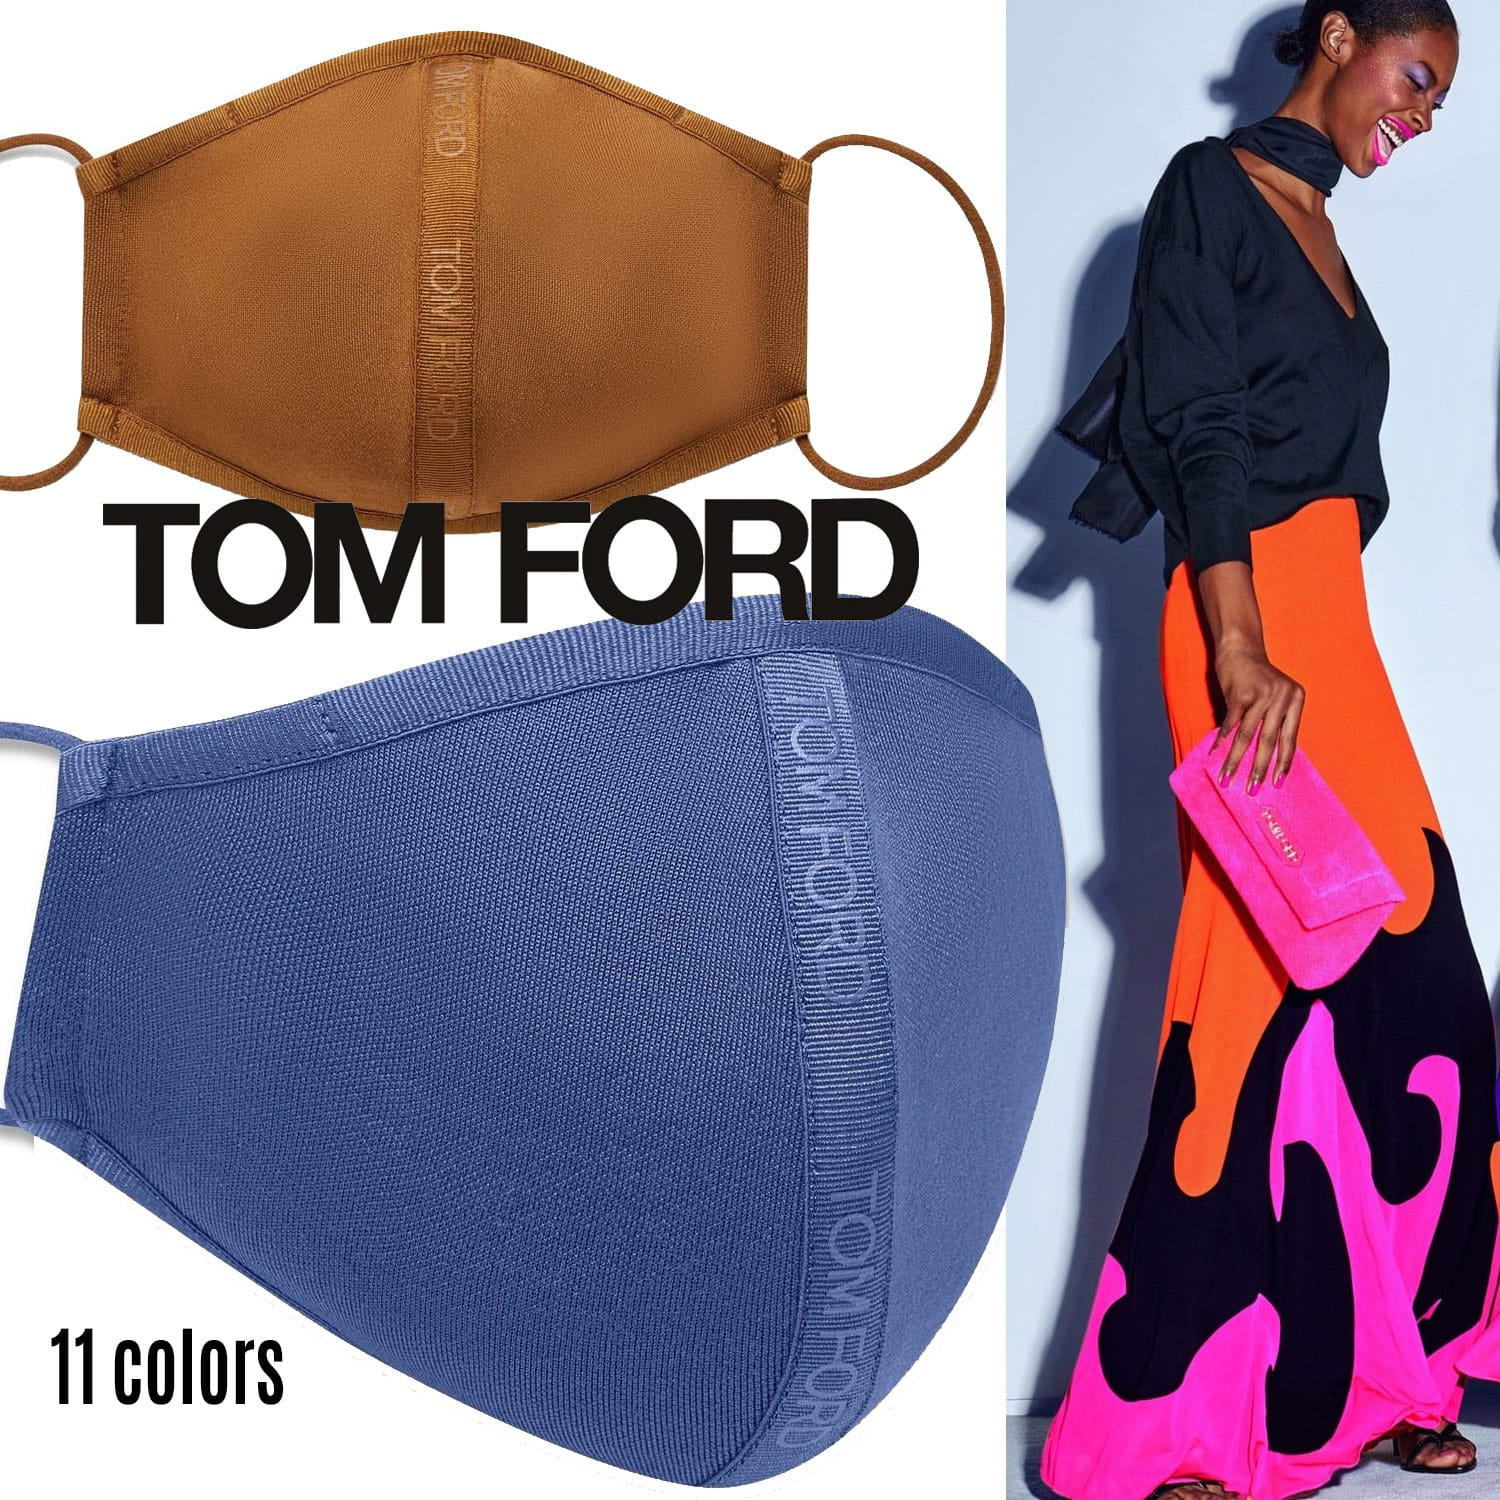 Tom Ford Protective Face Mask 2021 by RUNWAY MAGAZINE